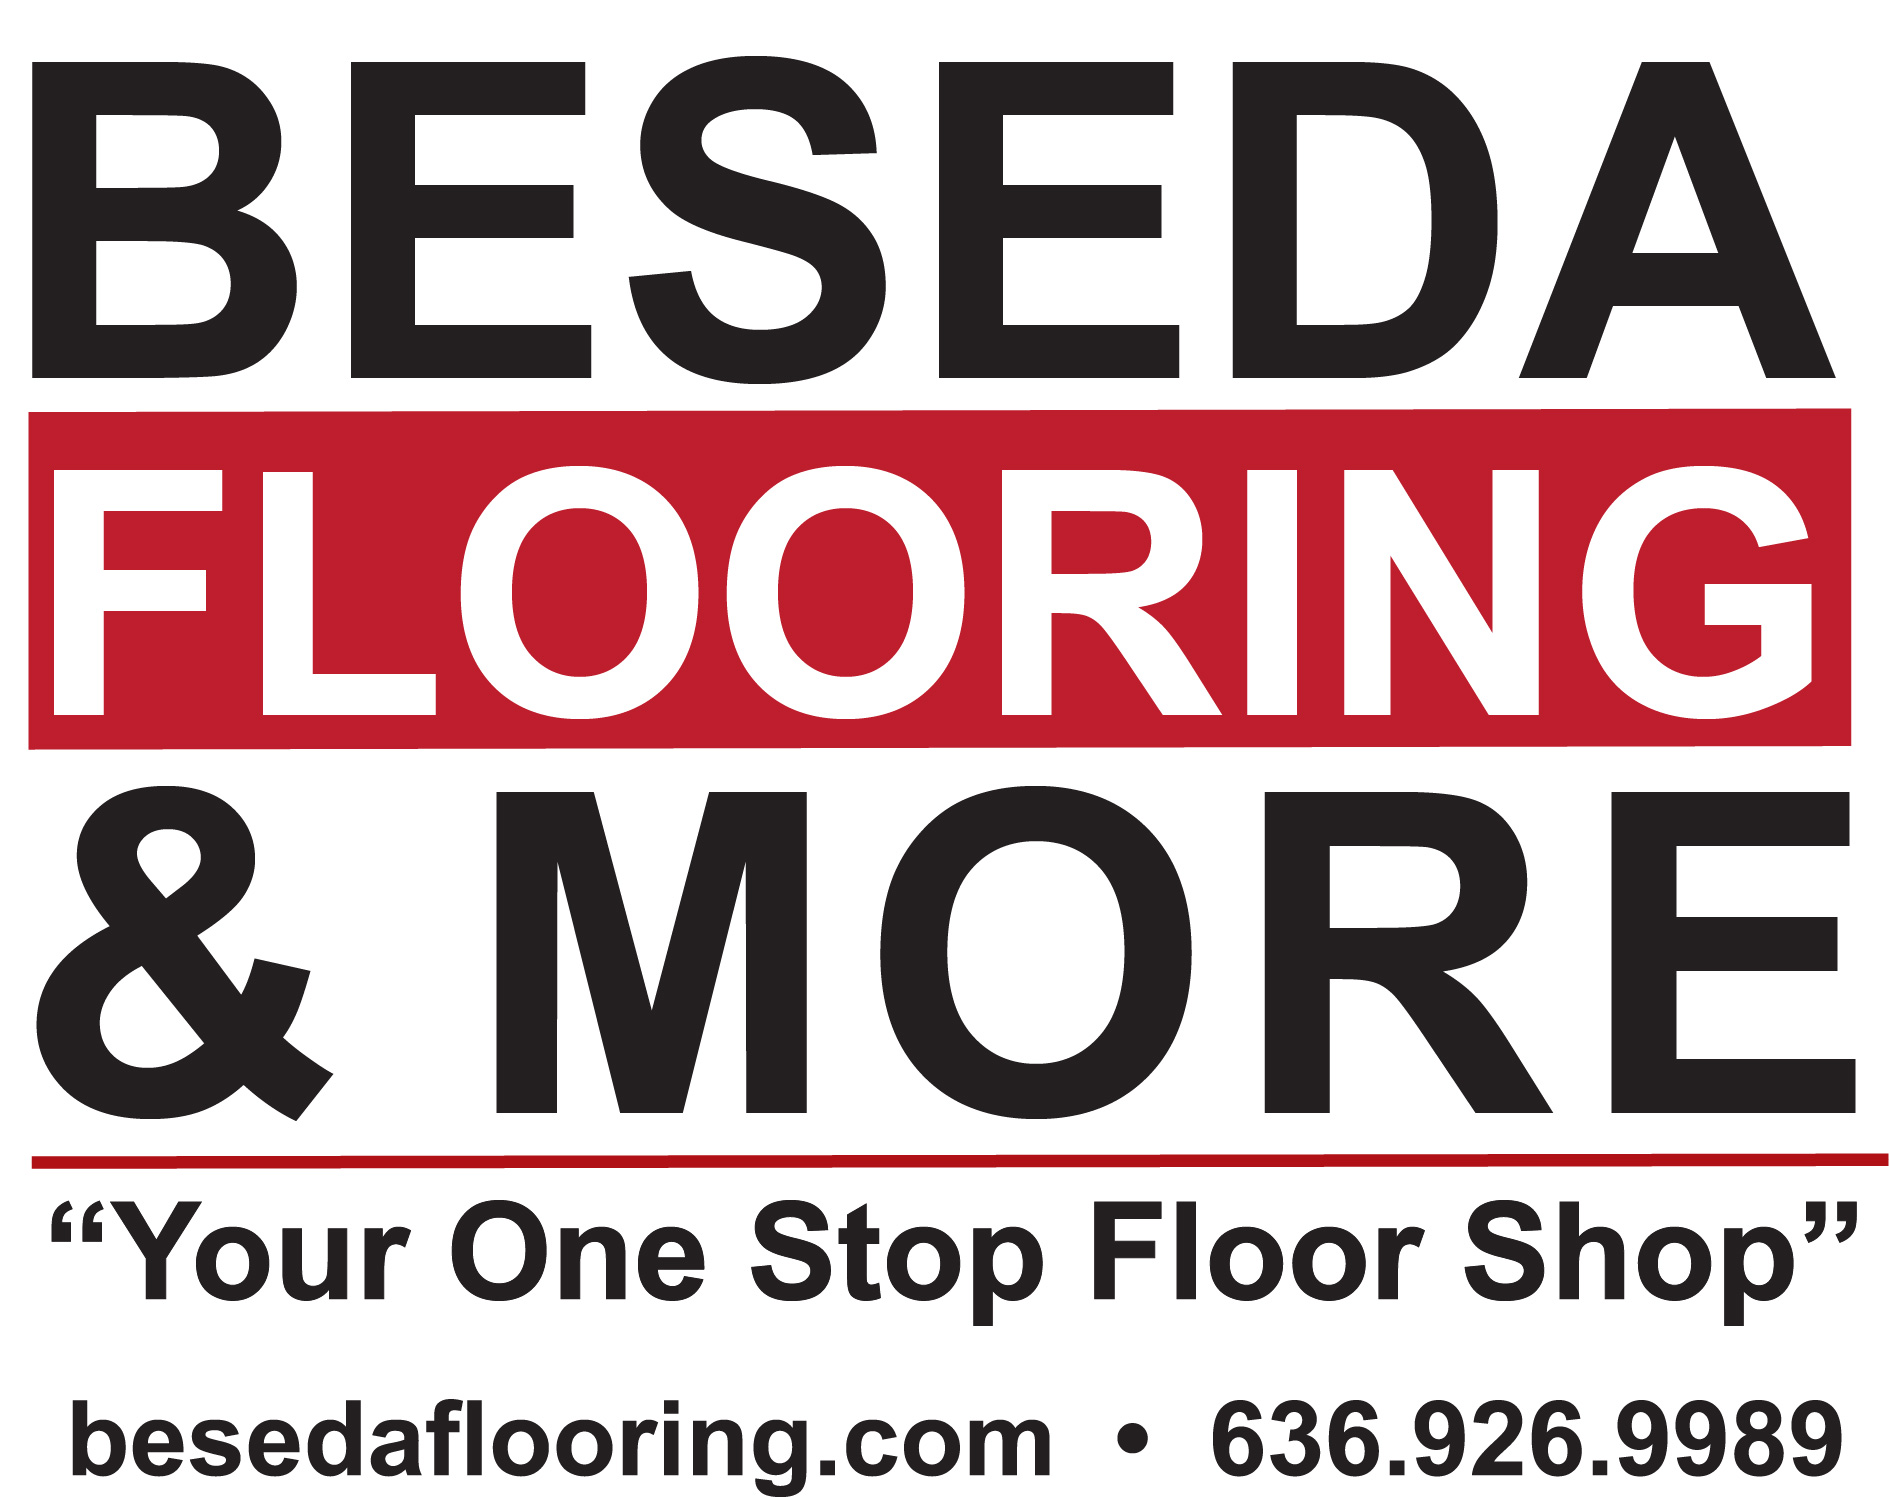 - Beseda Flooring & More has been a supporter for years and we are proud to have them as a 2018 Sponsor.